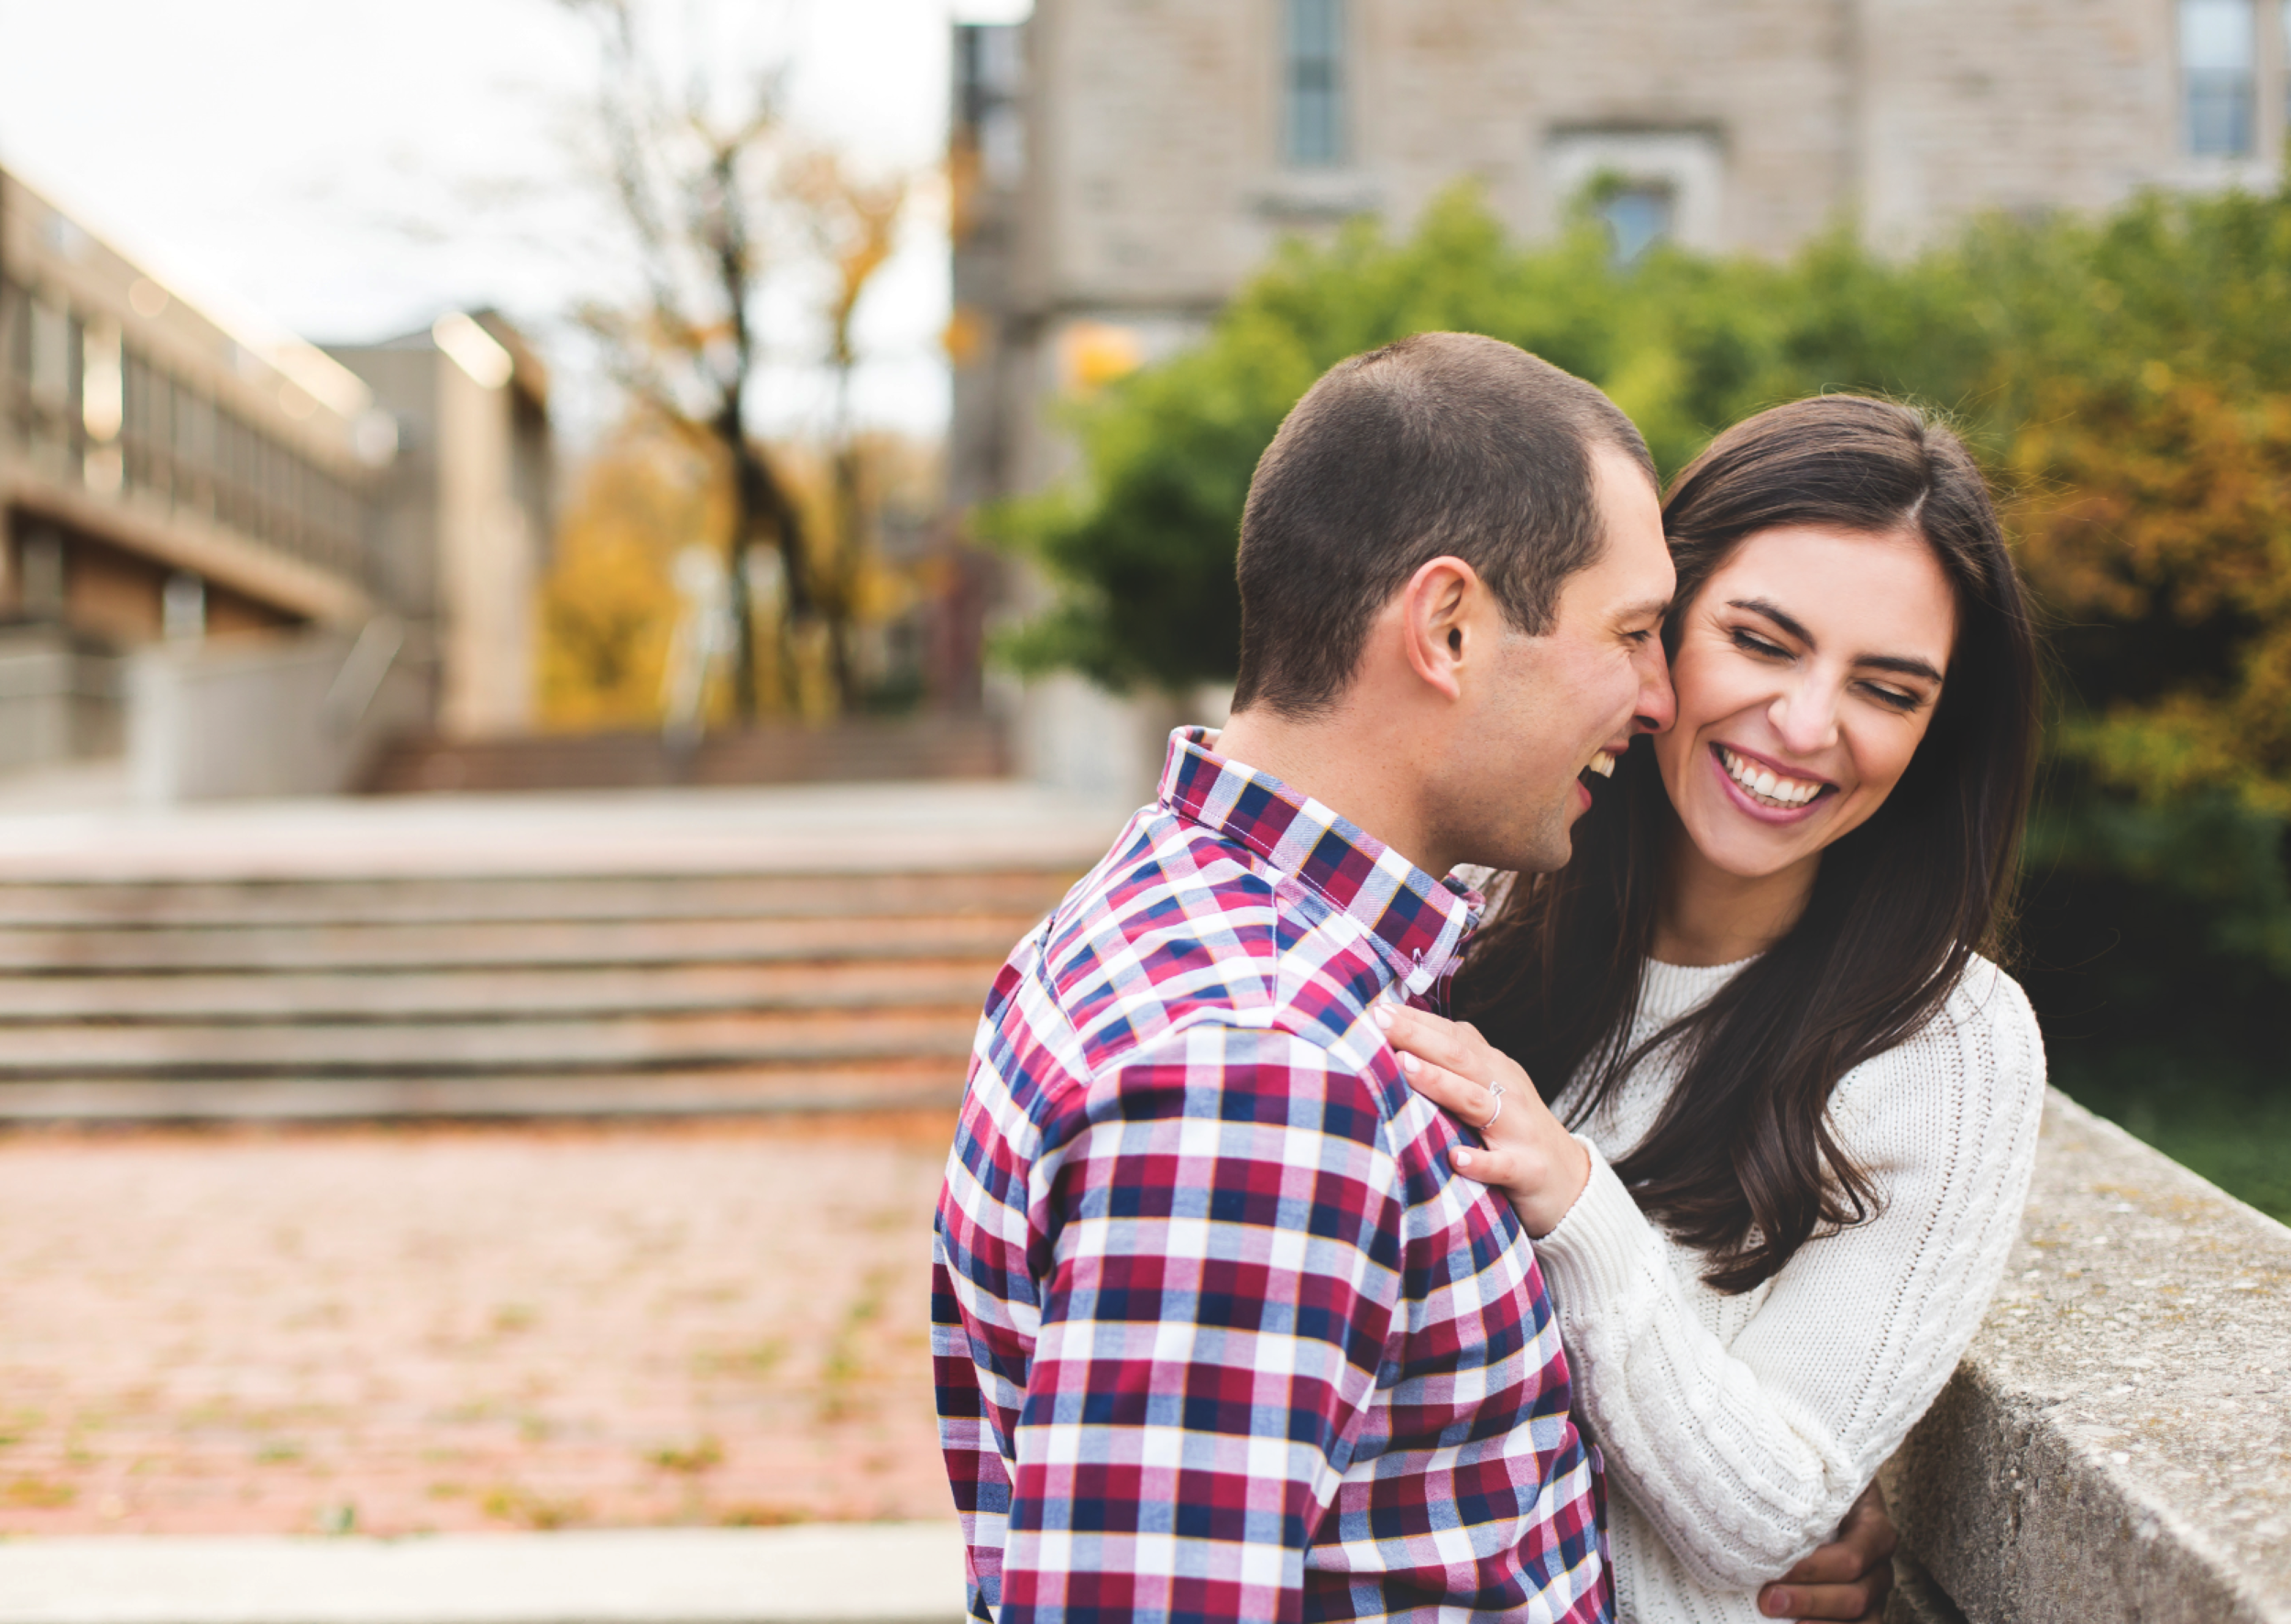 Engagement-Photography-Guelph-University-Campus-Hamilton-Burlington-Oakville-Niagara-Toronto-Wedding-Photographer-Photo-Image-24.png